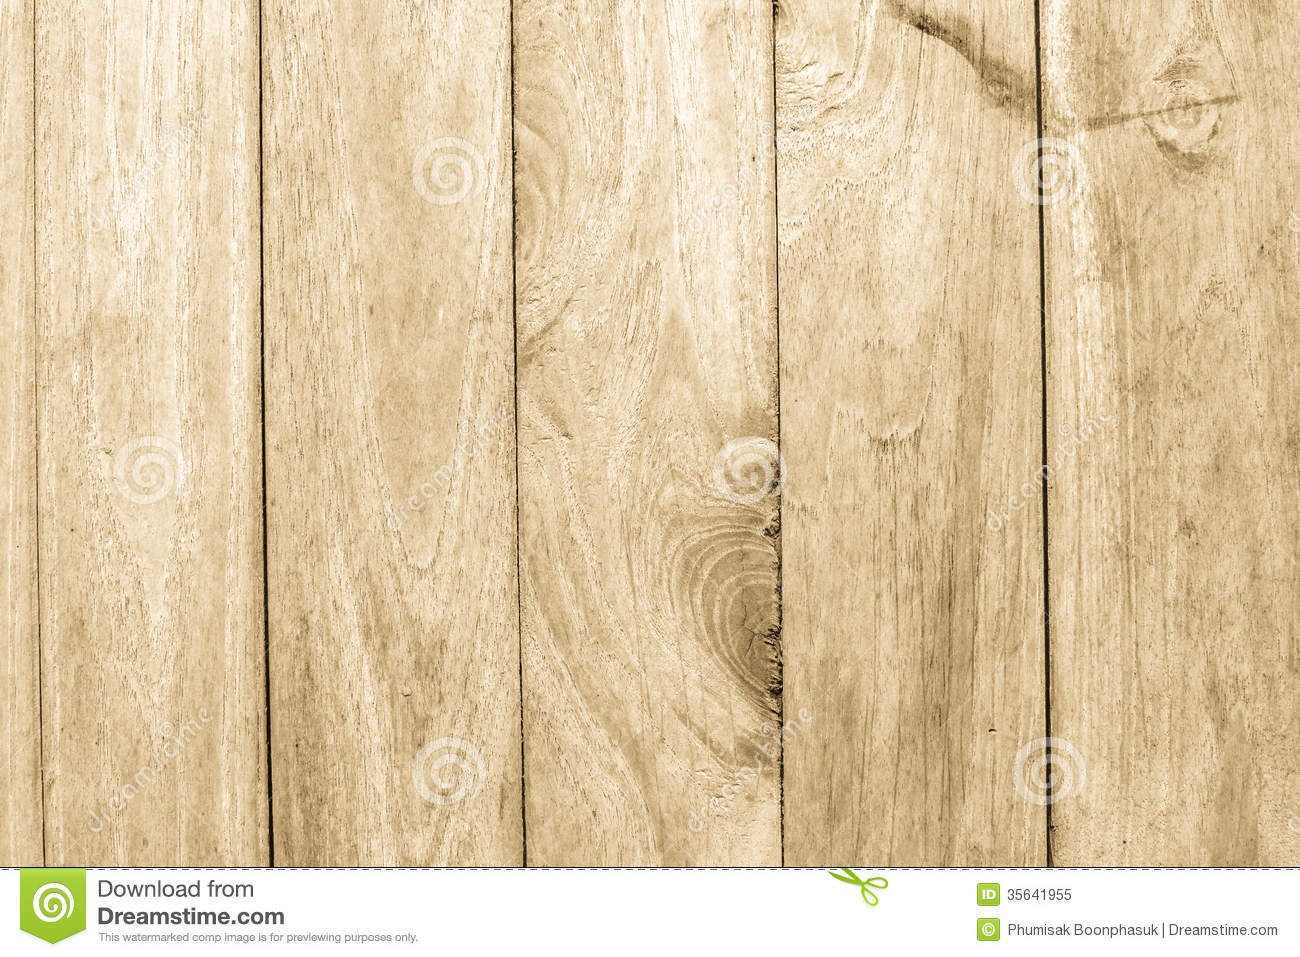 fond en bois de texture de mur de parquet de surface de plancher photo libre de droits image. Black Bedroom Furniture Sets. Home Design Ideas